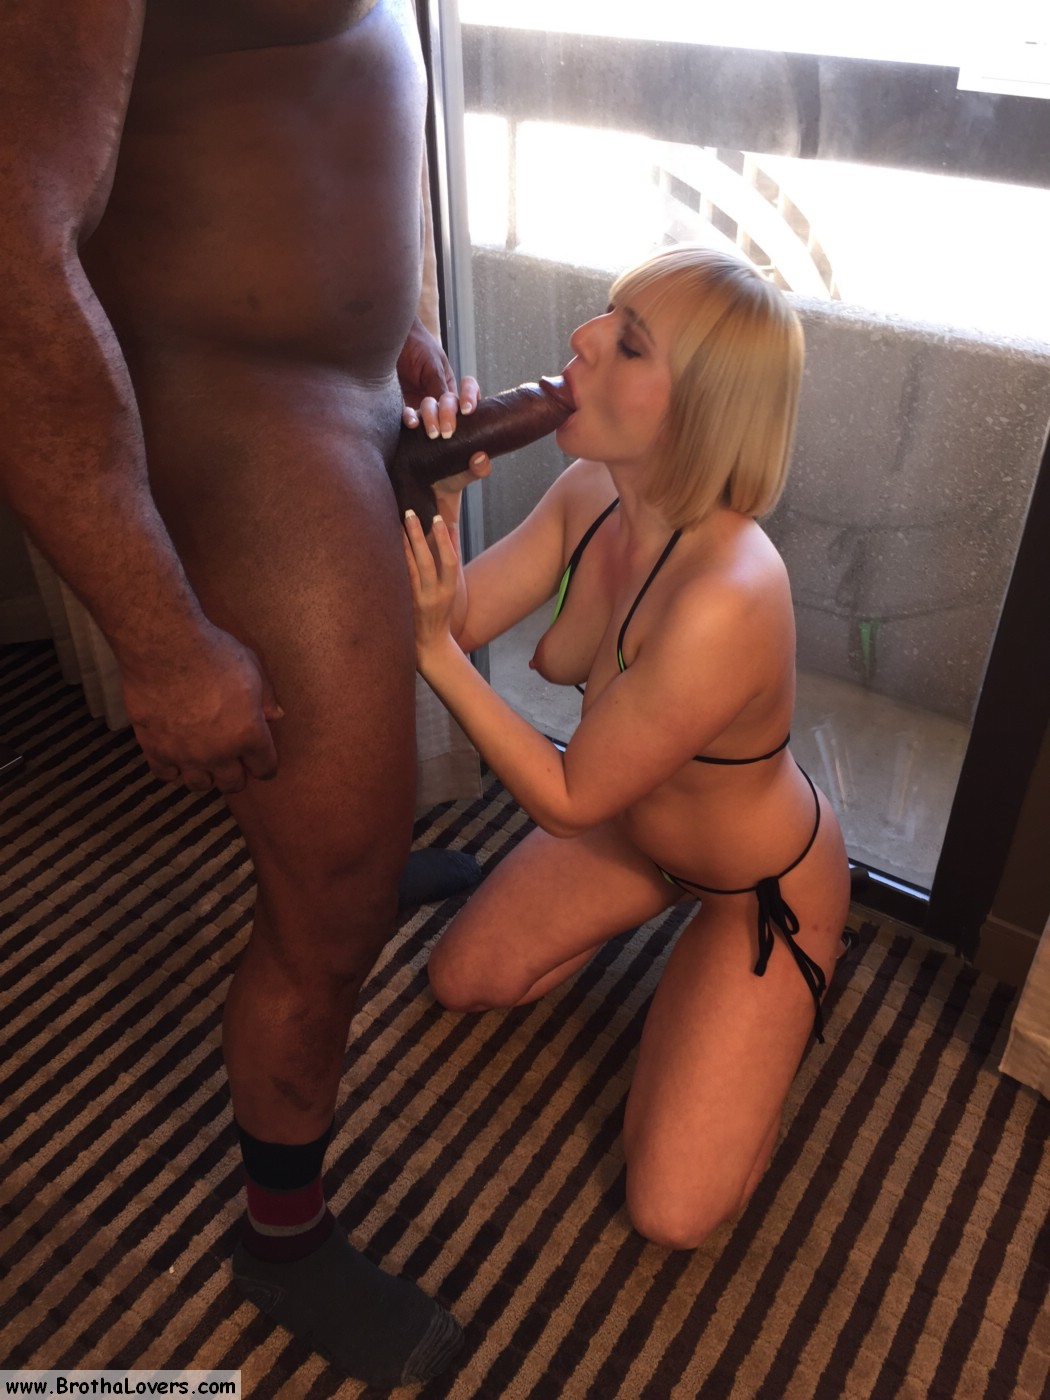 Cuckold wife fucks bbc she met online - 2 part 7